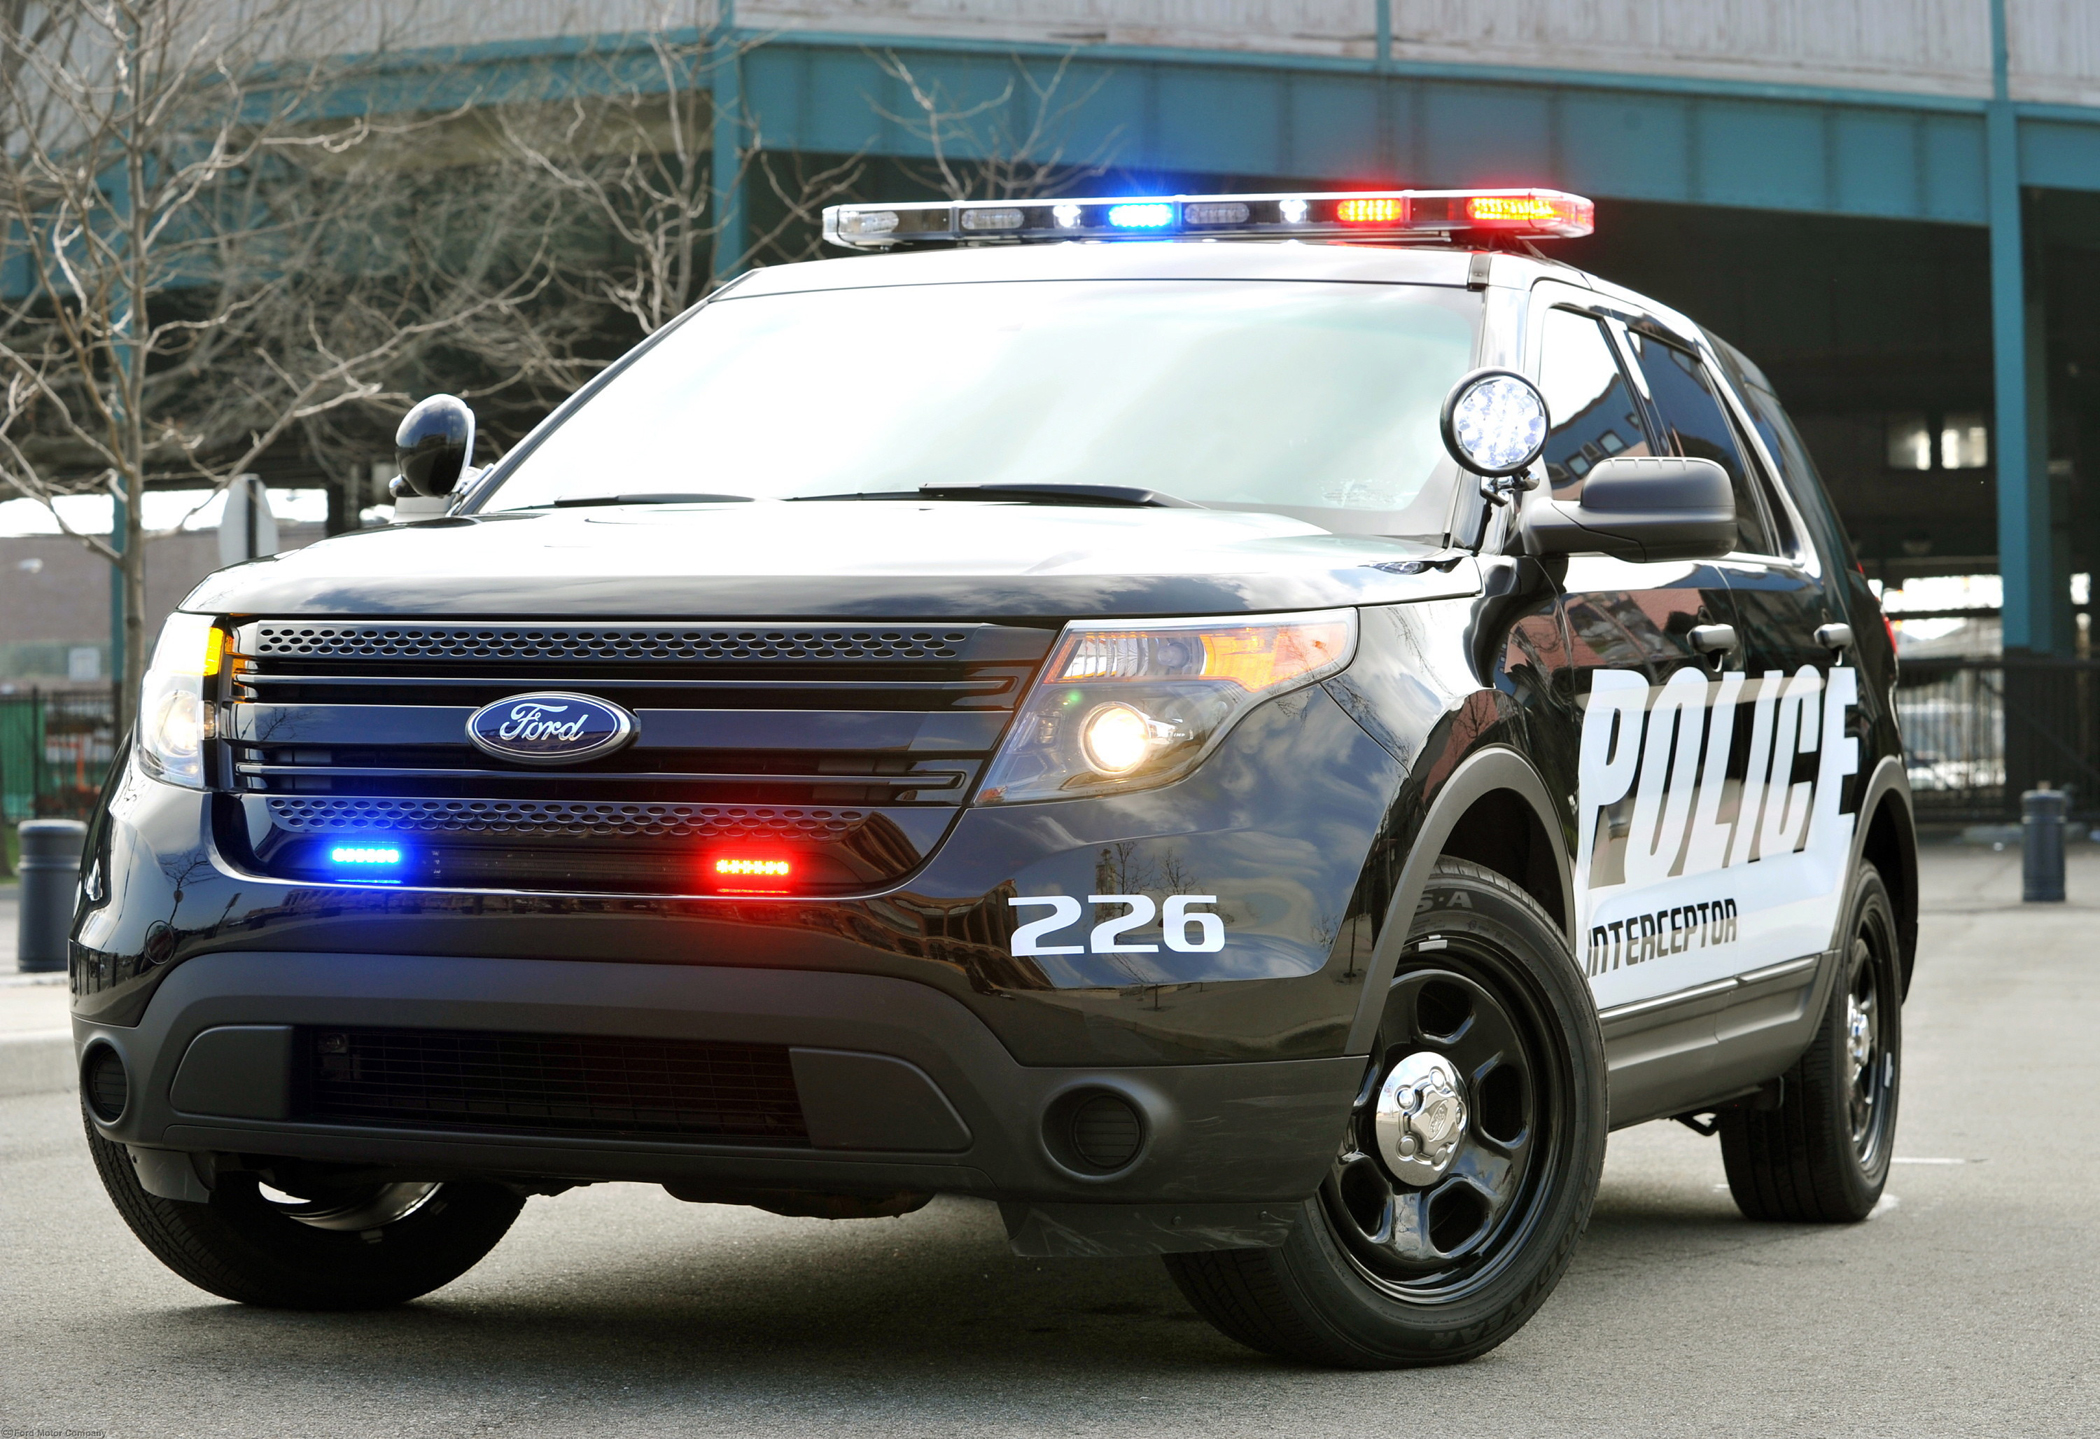 Manufacturer Photo Ford Specifically Designed And Engineered An All New Police Interceptor To Handle